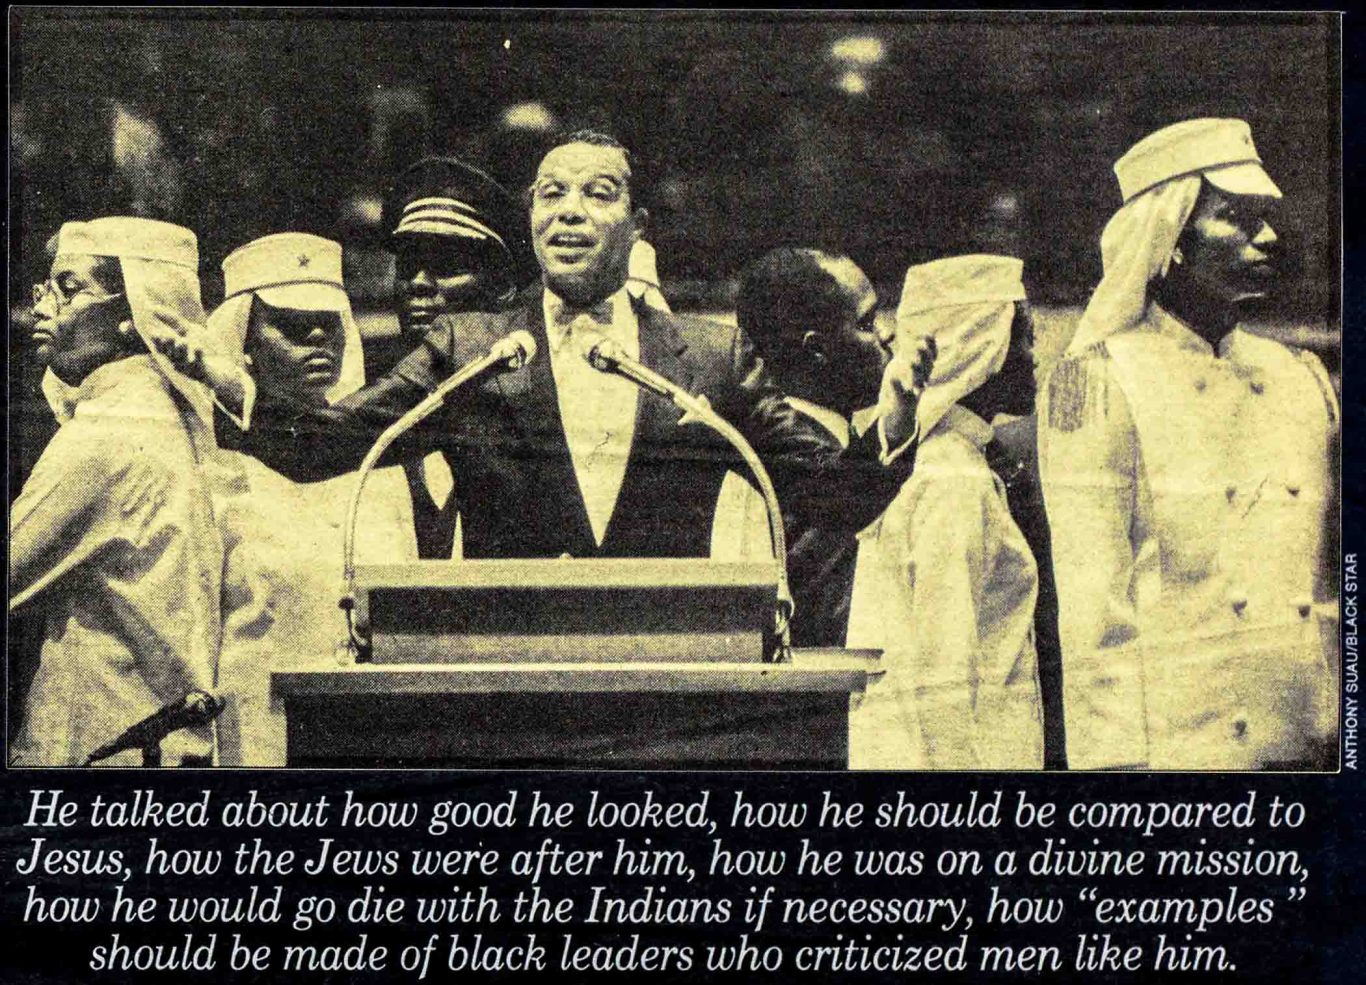 1985 Village Voice article by Stanley Crouch on Louis Farrakhan and the nation of Islam